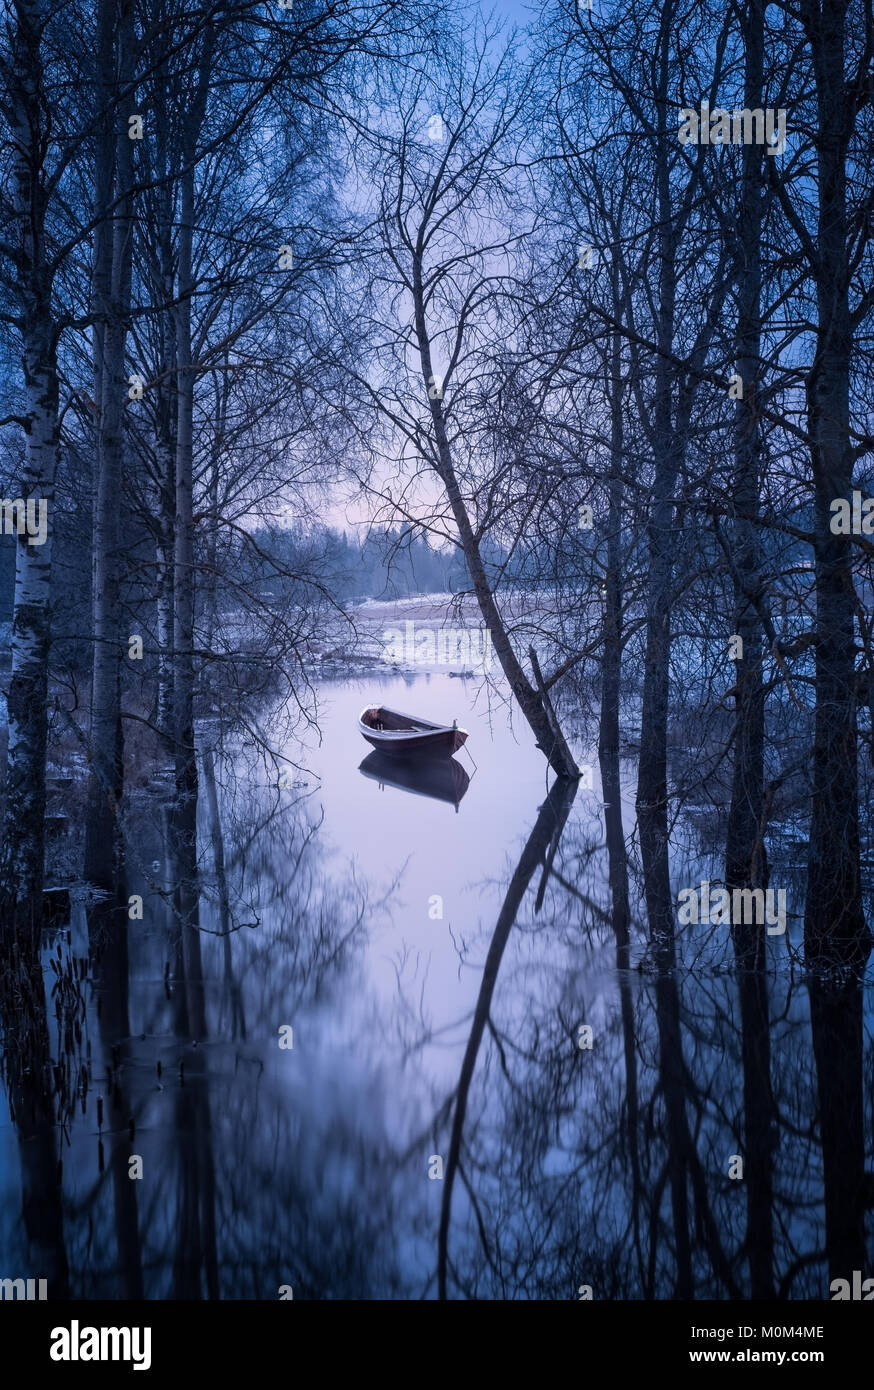 Winter landscape with sunset and boat at evening in Finland - Stock Image